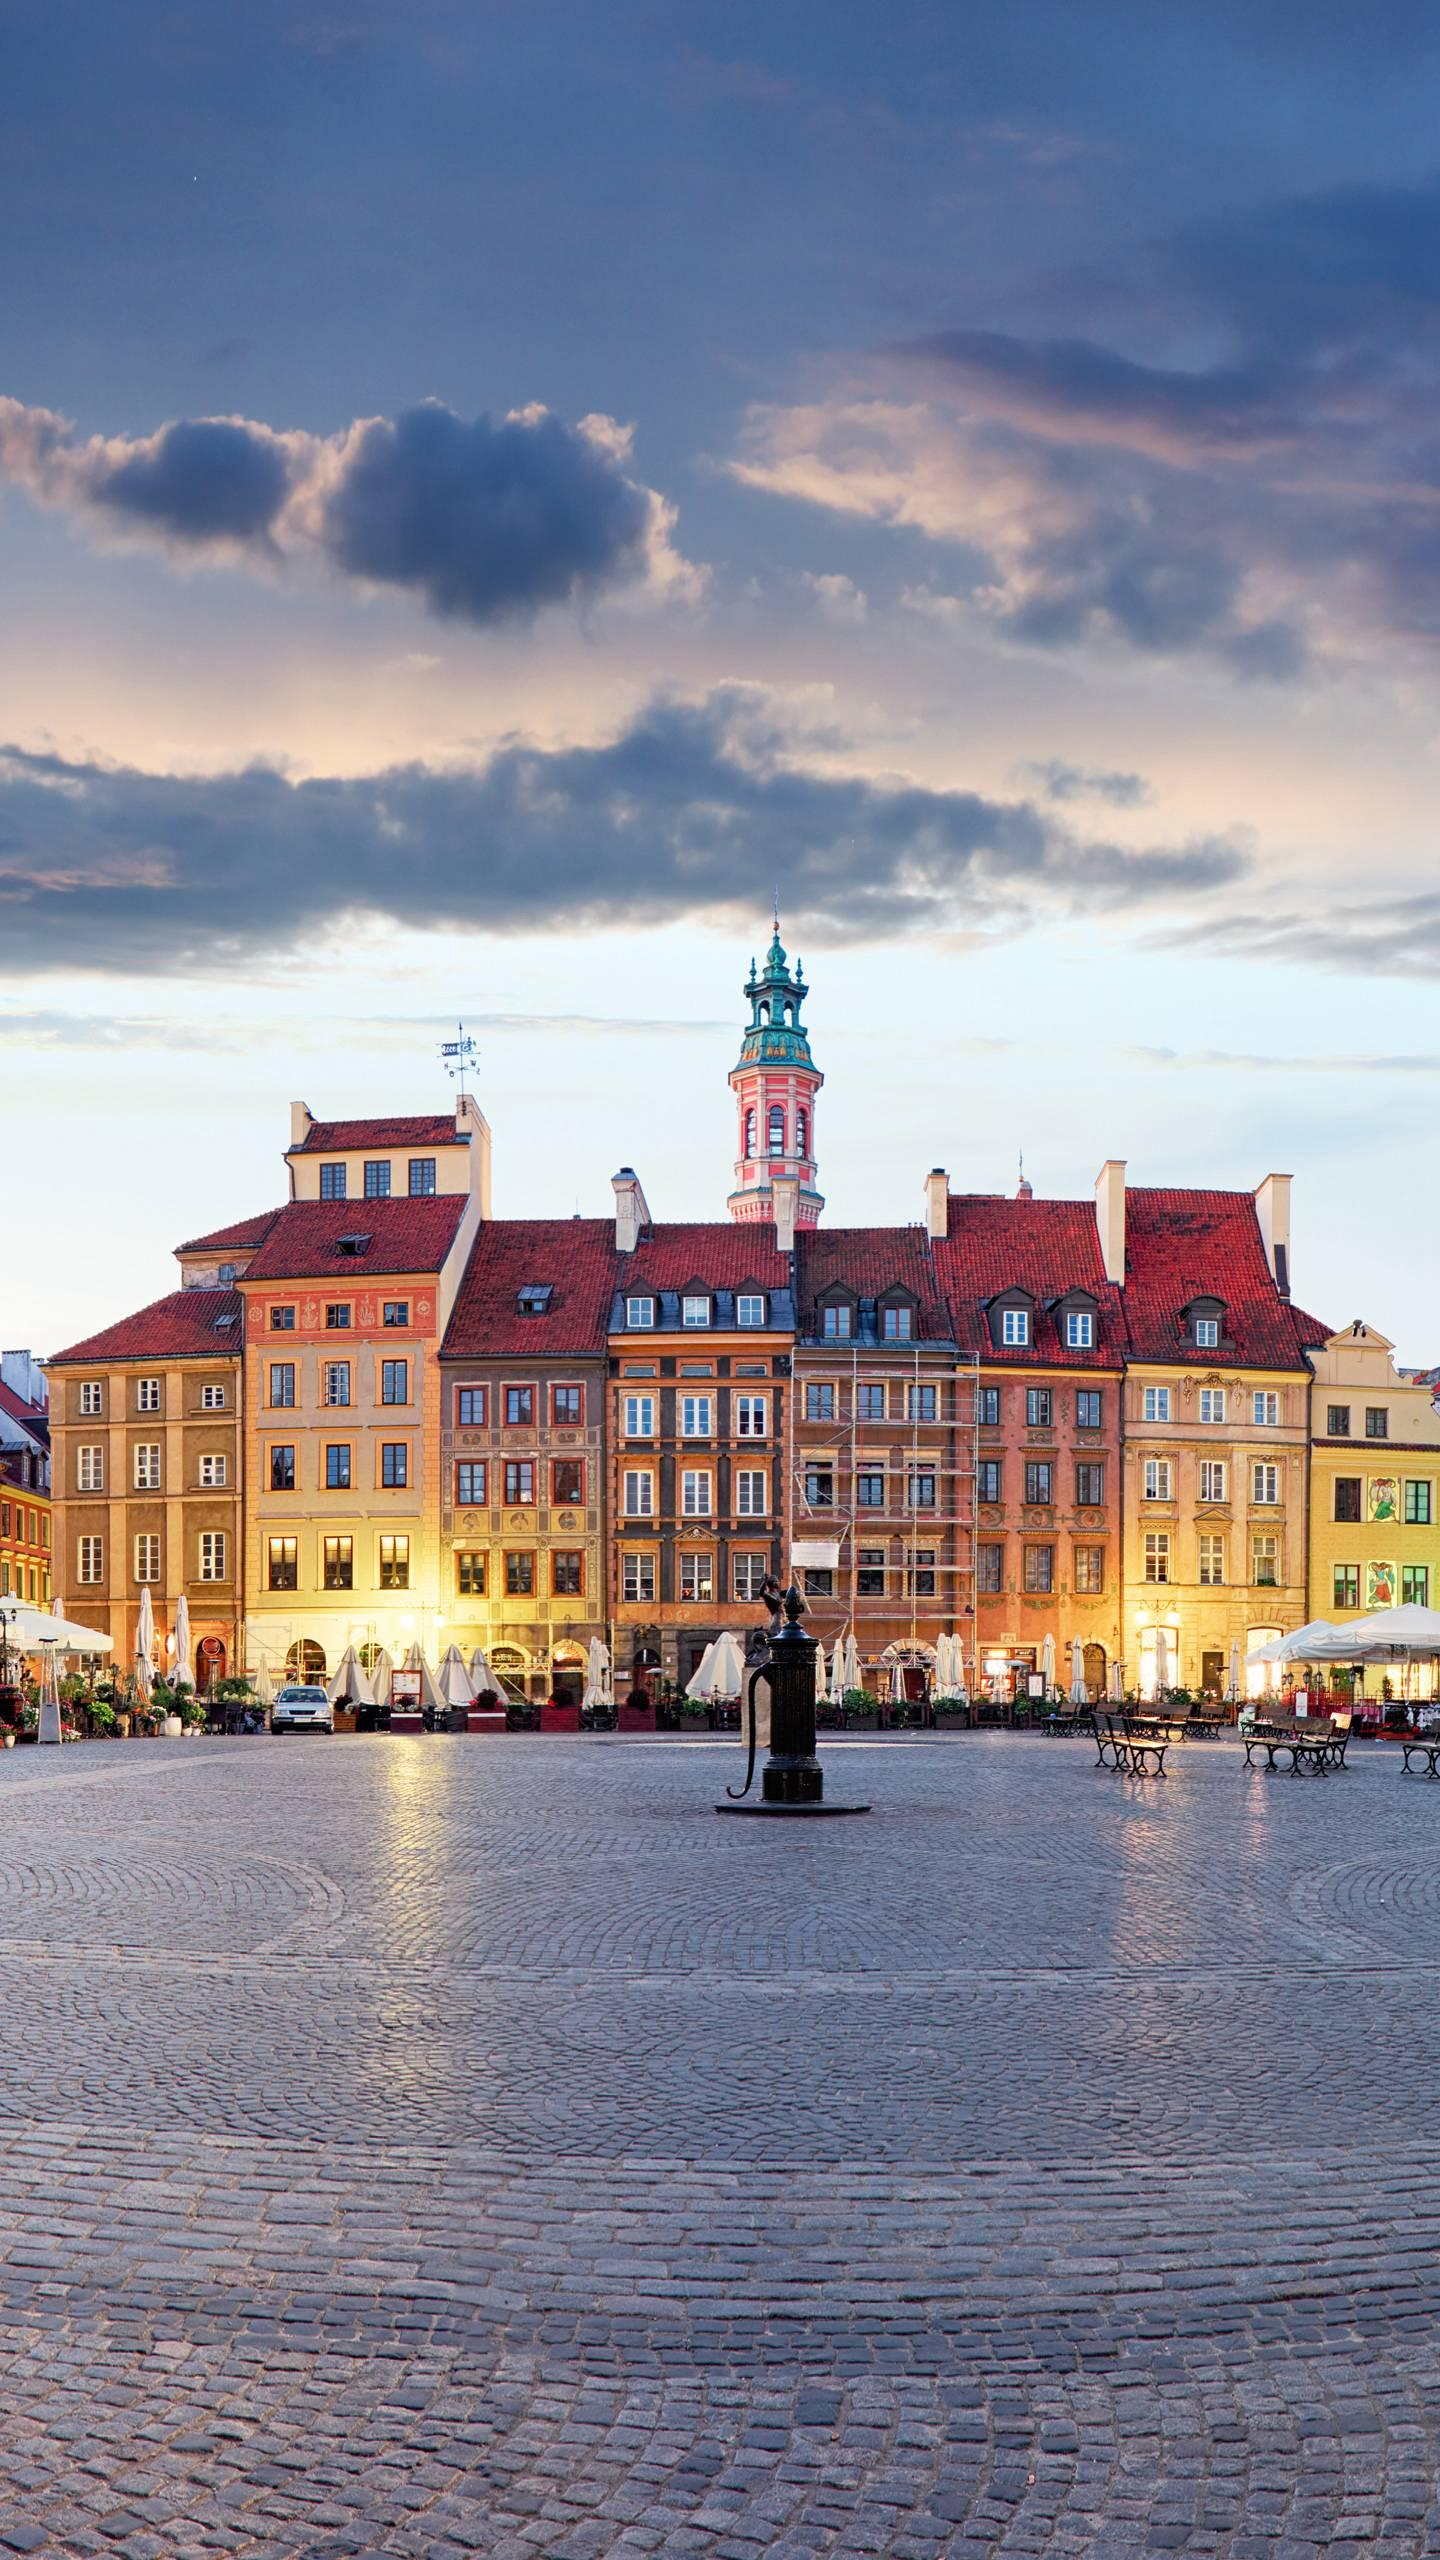 Warsaw - Market Square. The oldest part of Warsaw is also one of the most important tourist attractions.